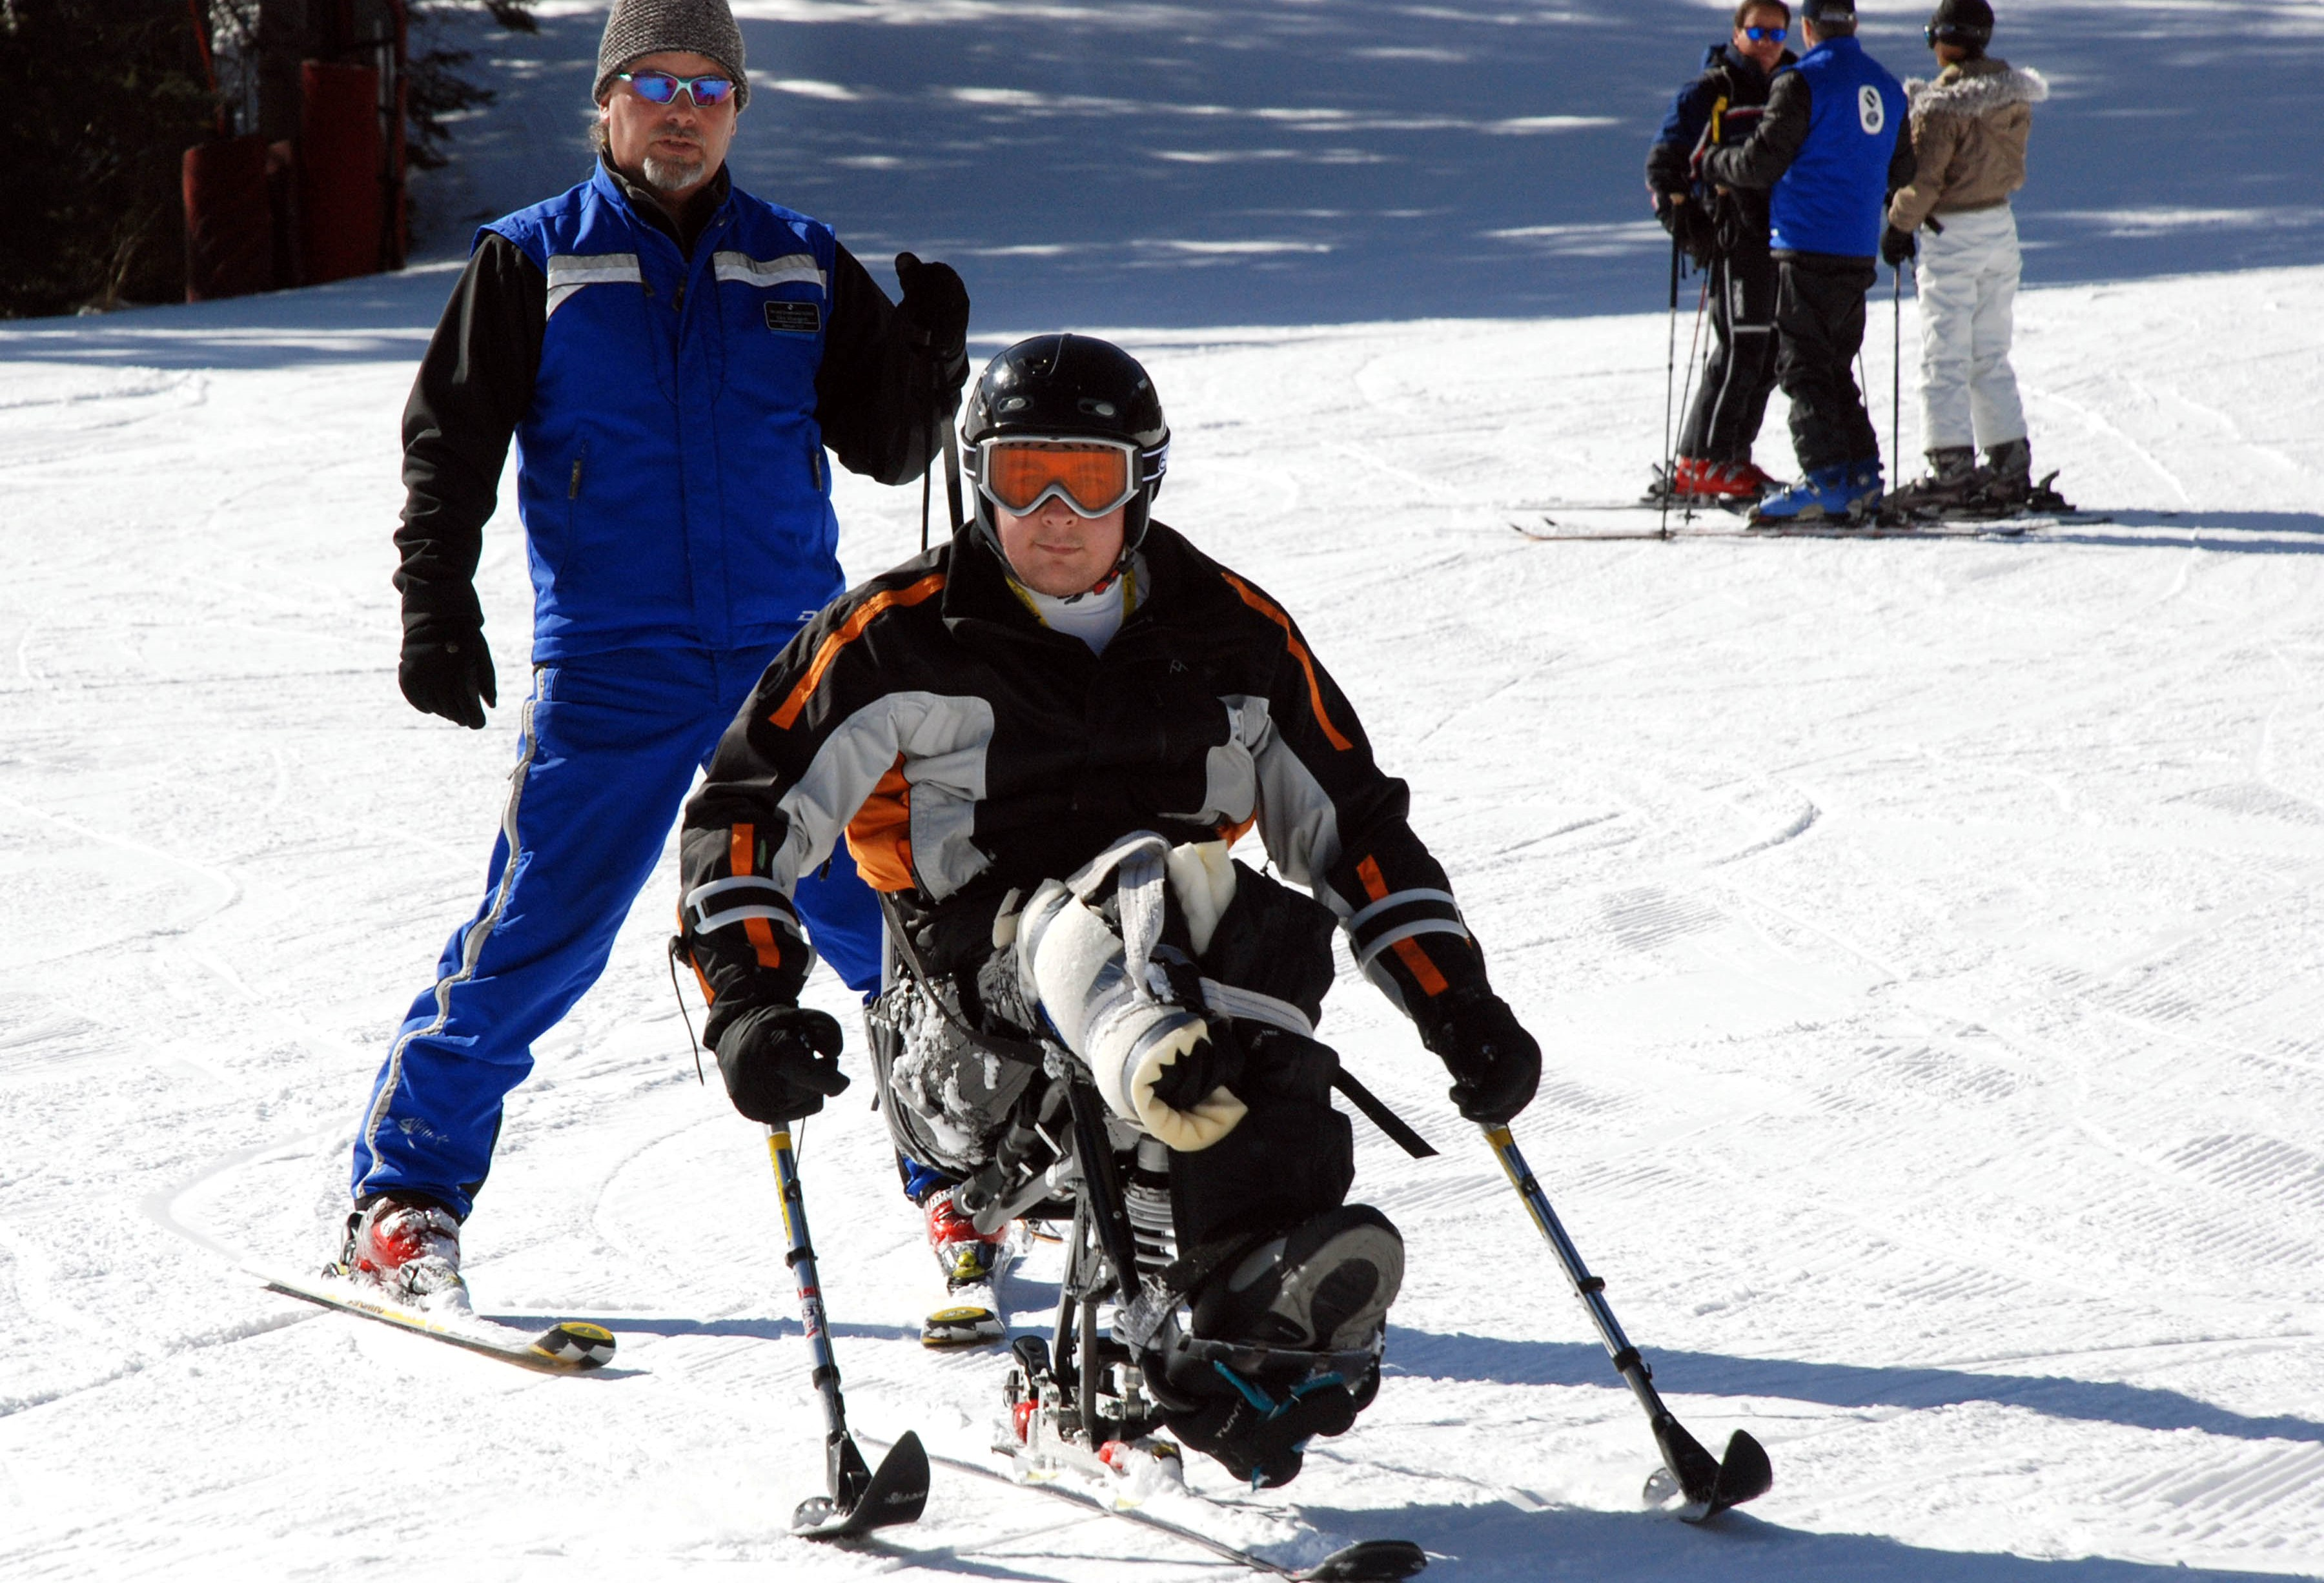 A person without the use of his legs learning to ski on a sit-ski, using two outriggers.